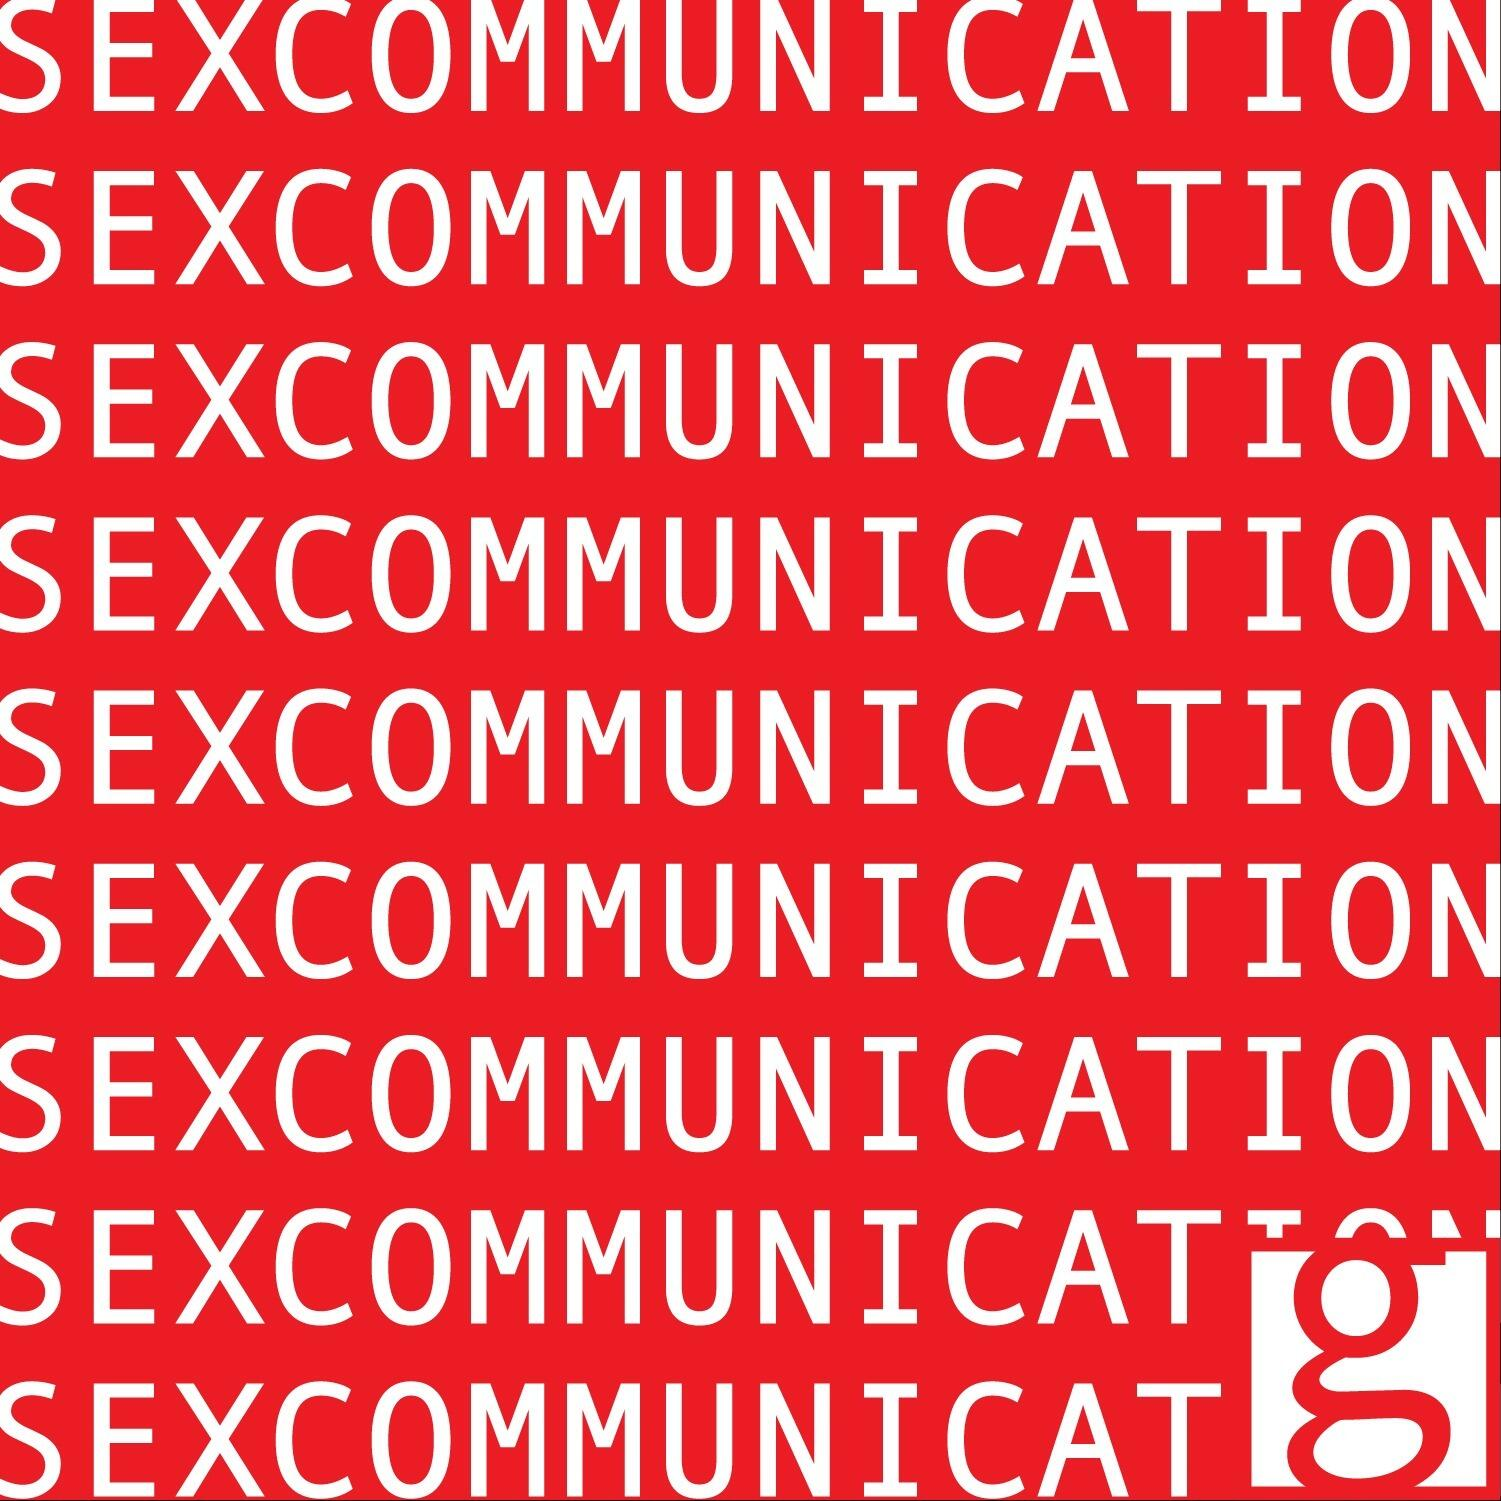 SEX COMMUNICATION